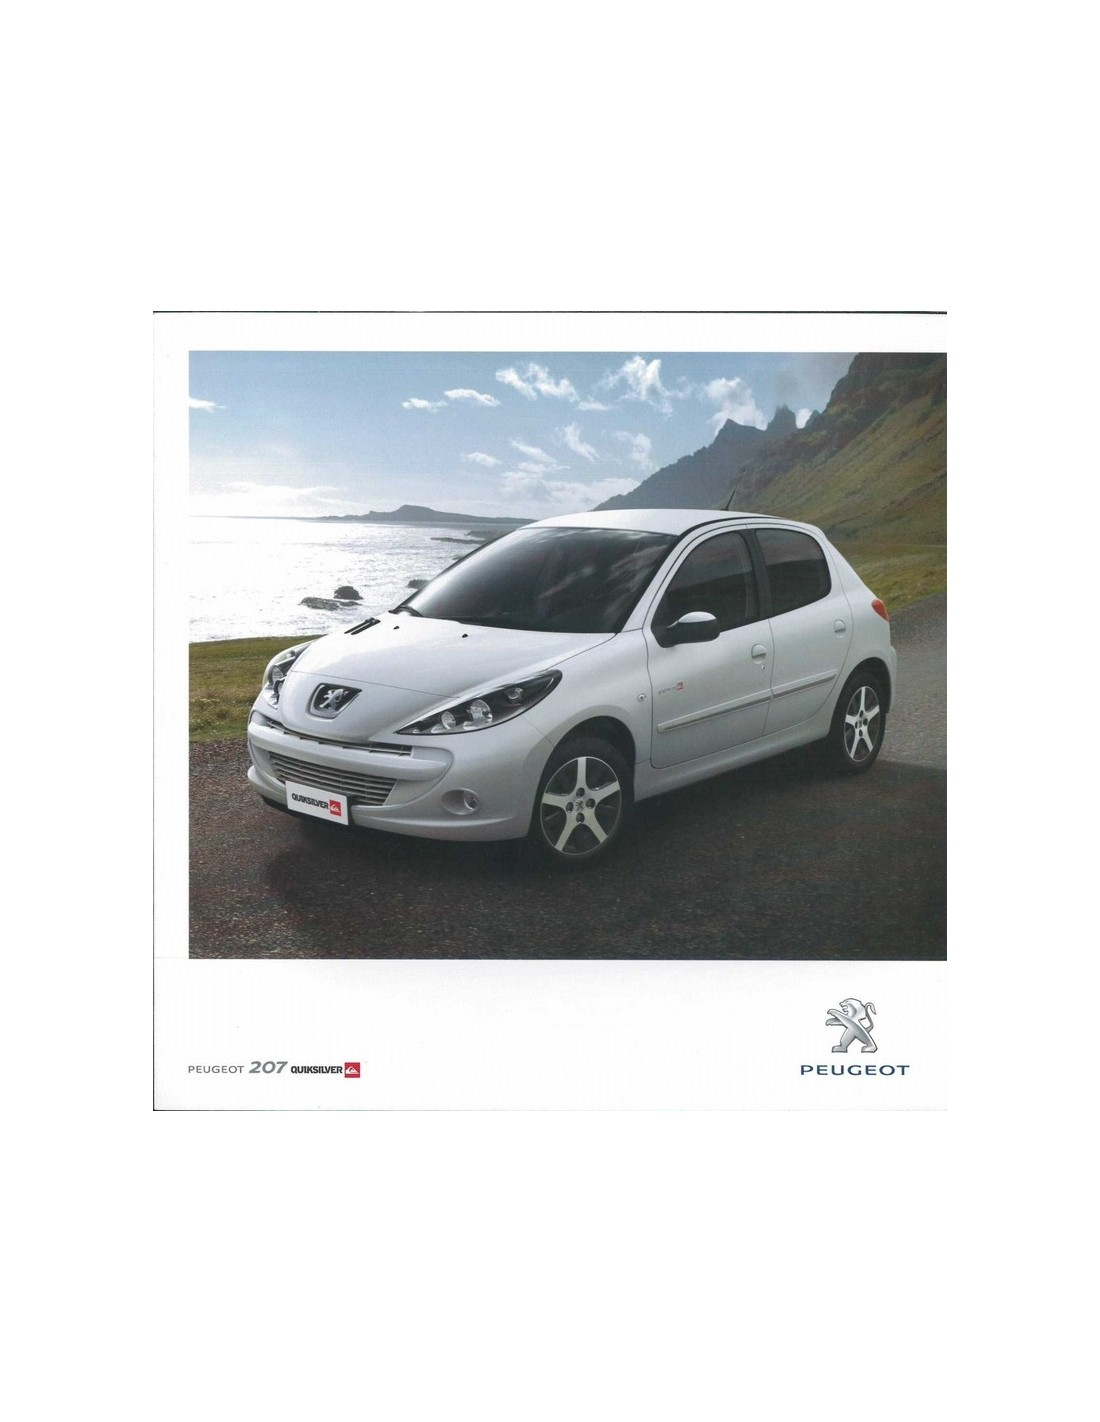 2011 peugeot escapade sw brochure portugesisch2011 peugeot 207 quicksilver brochure portugesisch. Black Bedroom Furniture Sets. Home Design Ideas